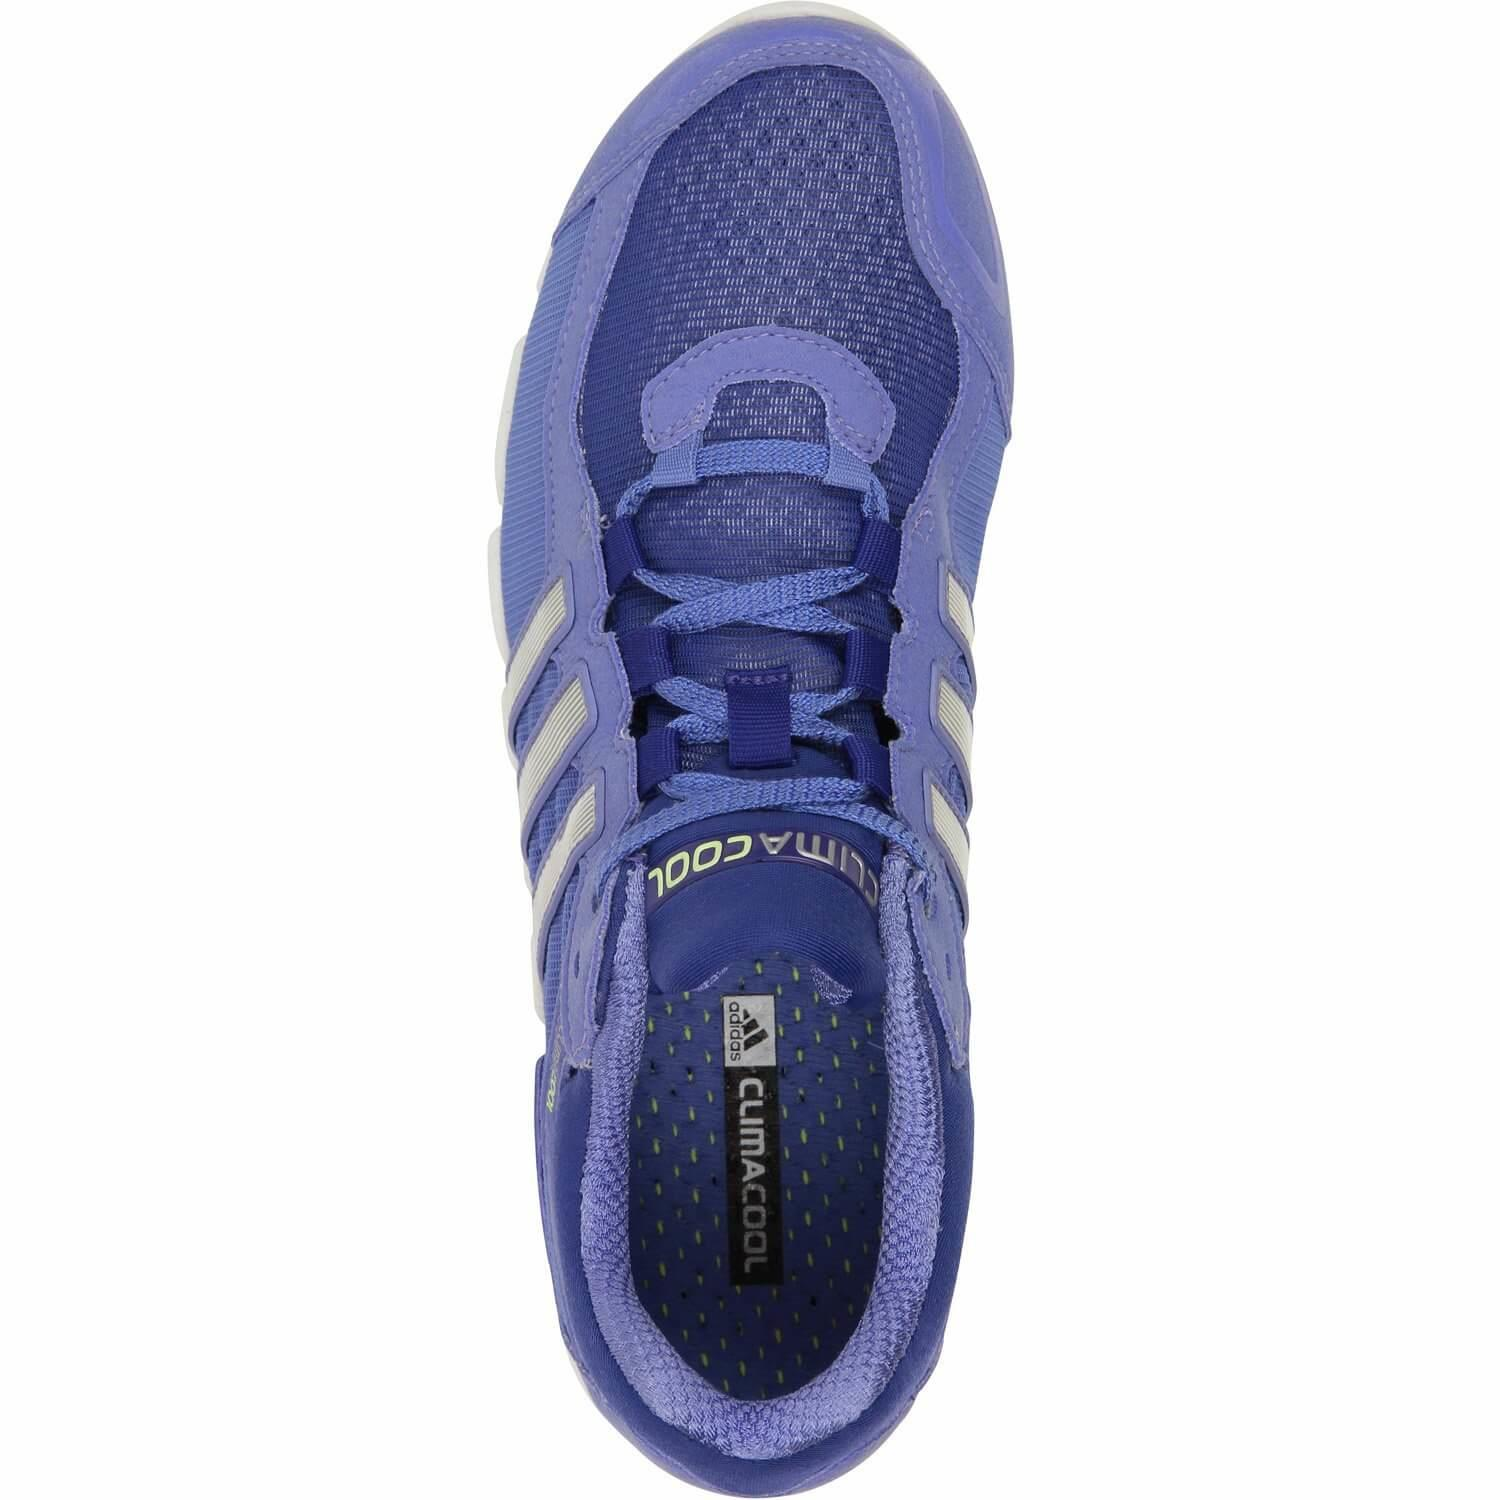 The Adidas Climacool Freshride has a breathable upper and secure lacing system